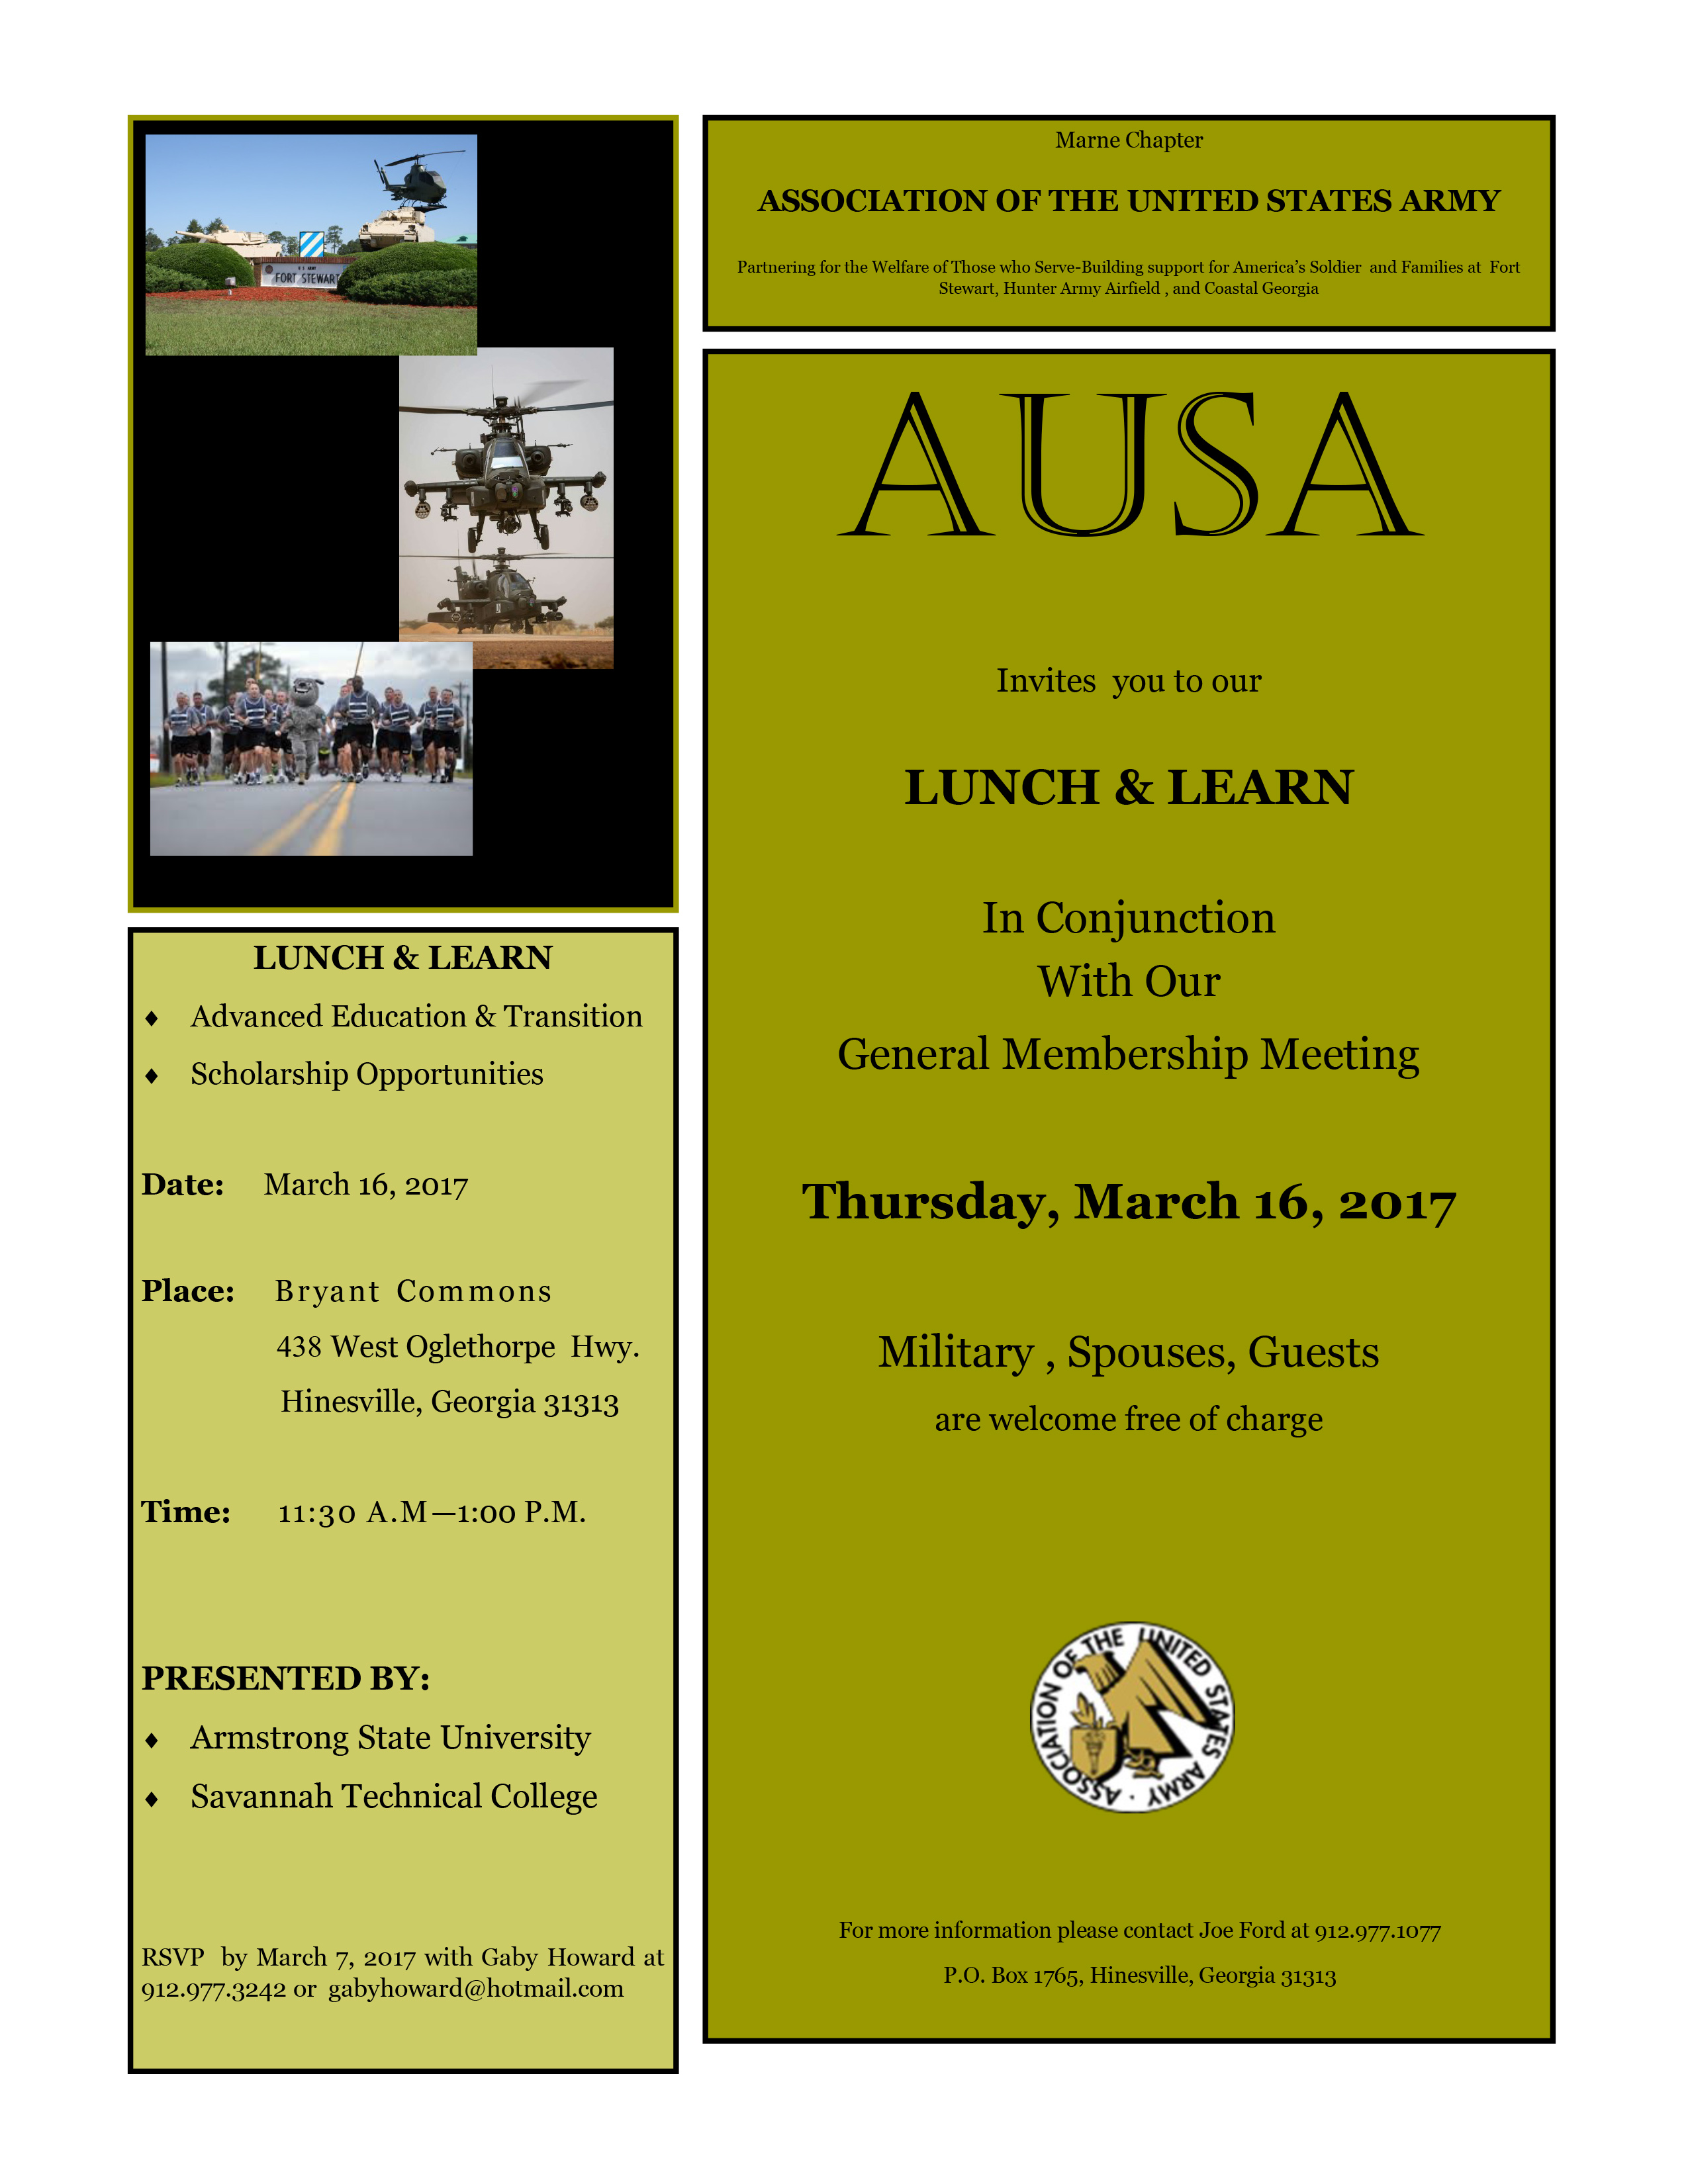 AUSA Lunch and Learn 2017